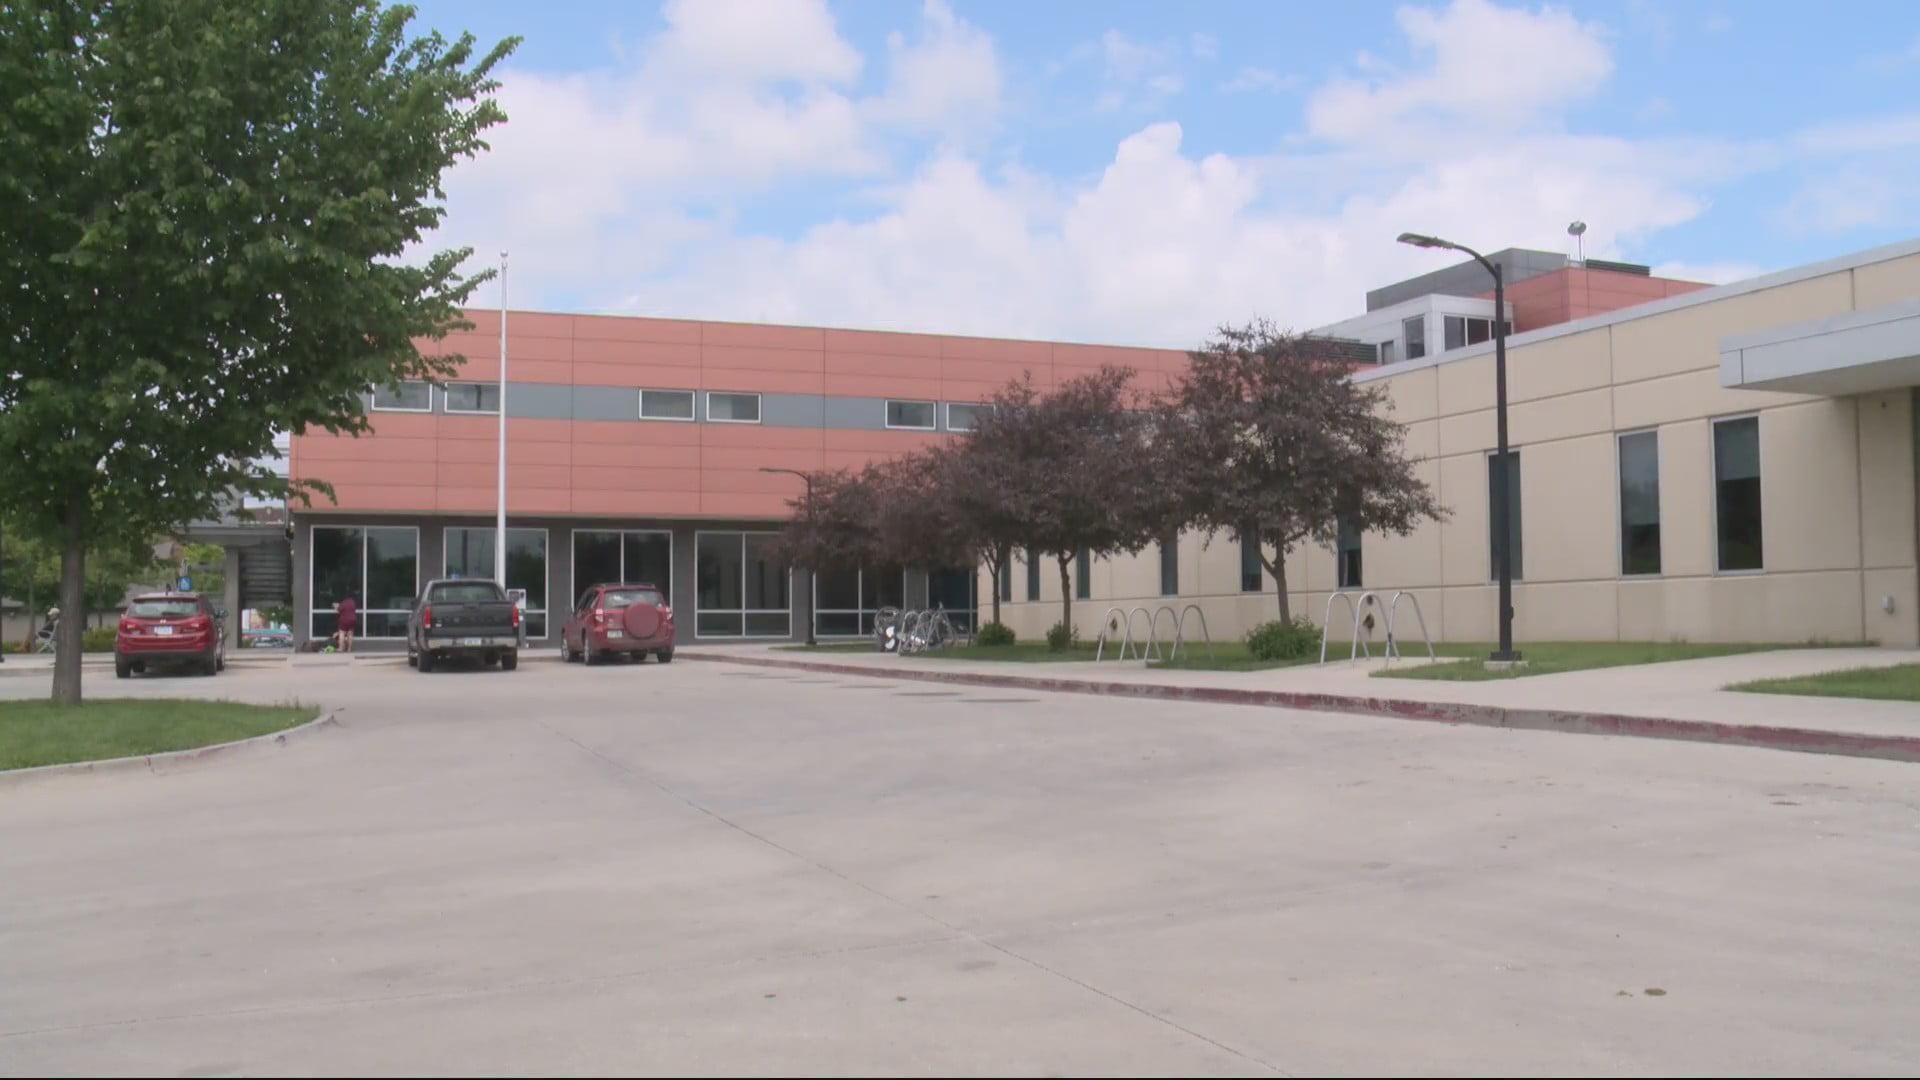 Central Iowa Homeless Shelter Prepares for Influx as End of Eviction Moratorium Looms 2